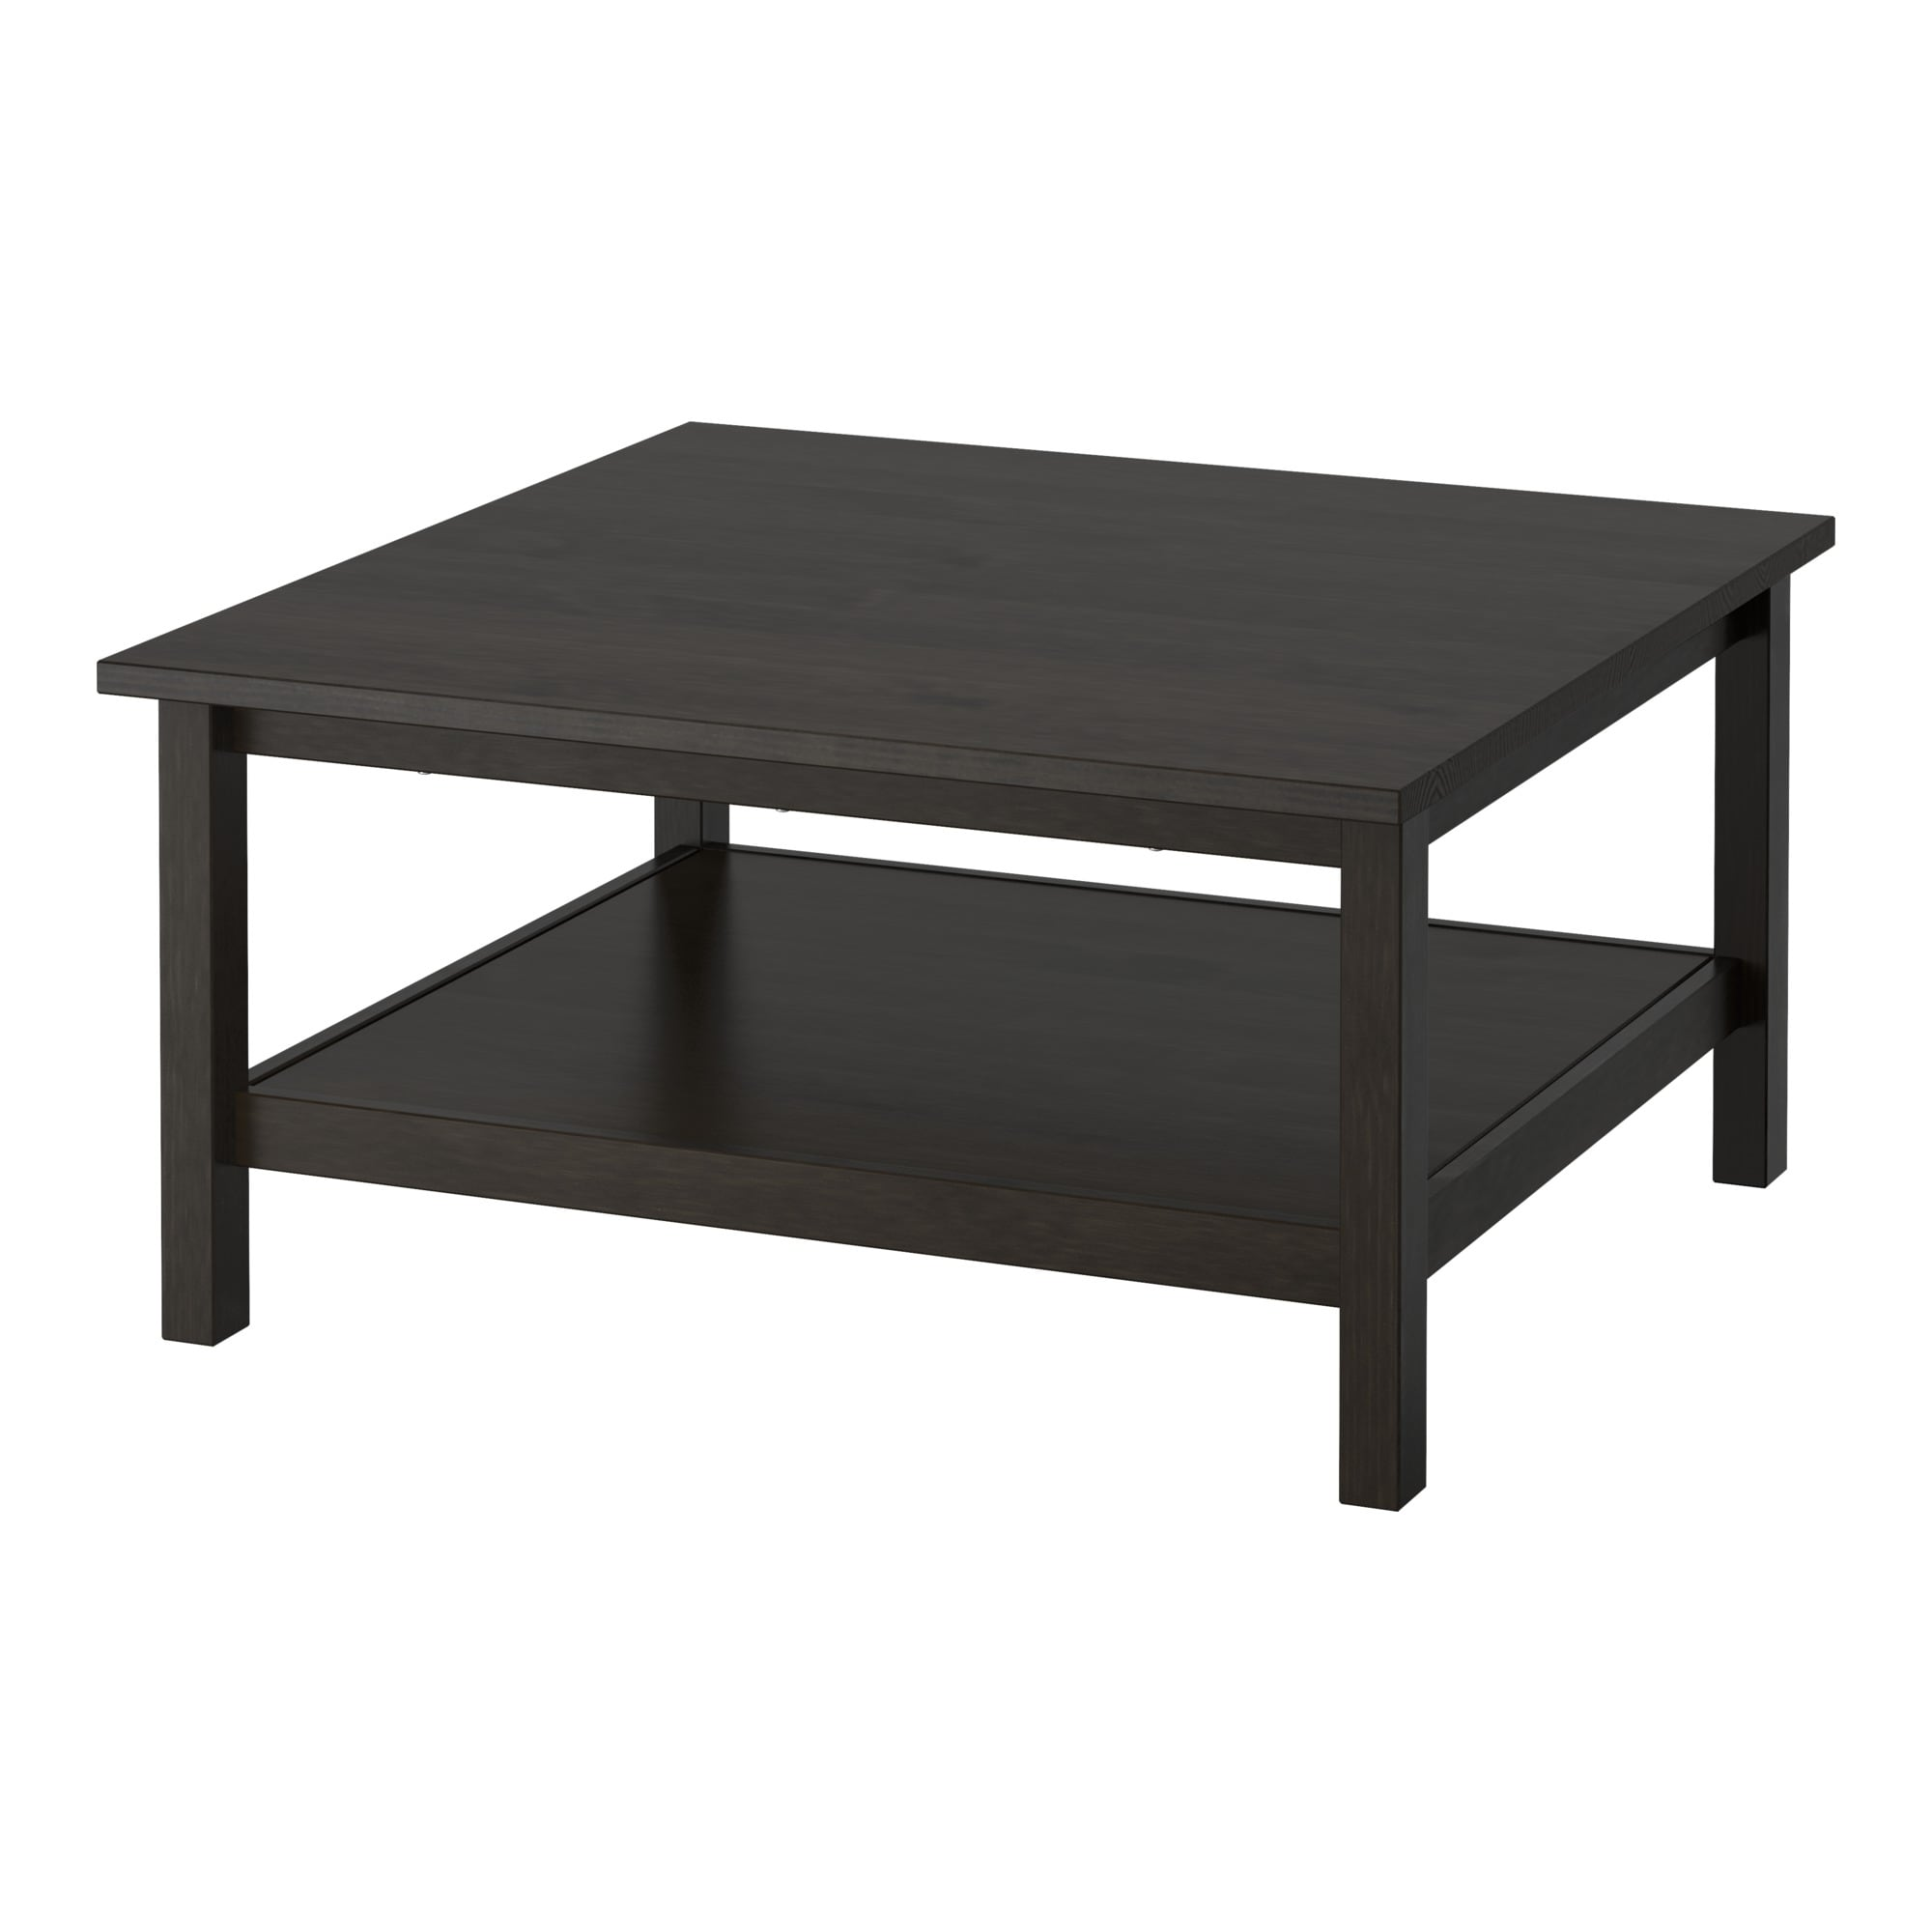 hemnes coffee table ikea black end with basket brown iron legs rattan furniture rustic garden small lamps for living room galvanized cherry dog cage magnolia farms waco patio west